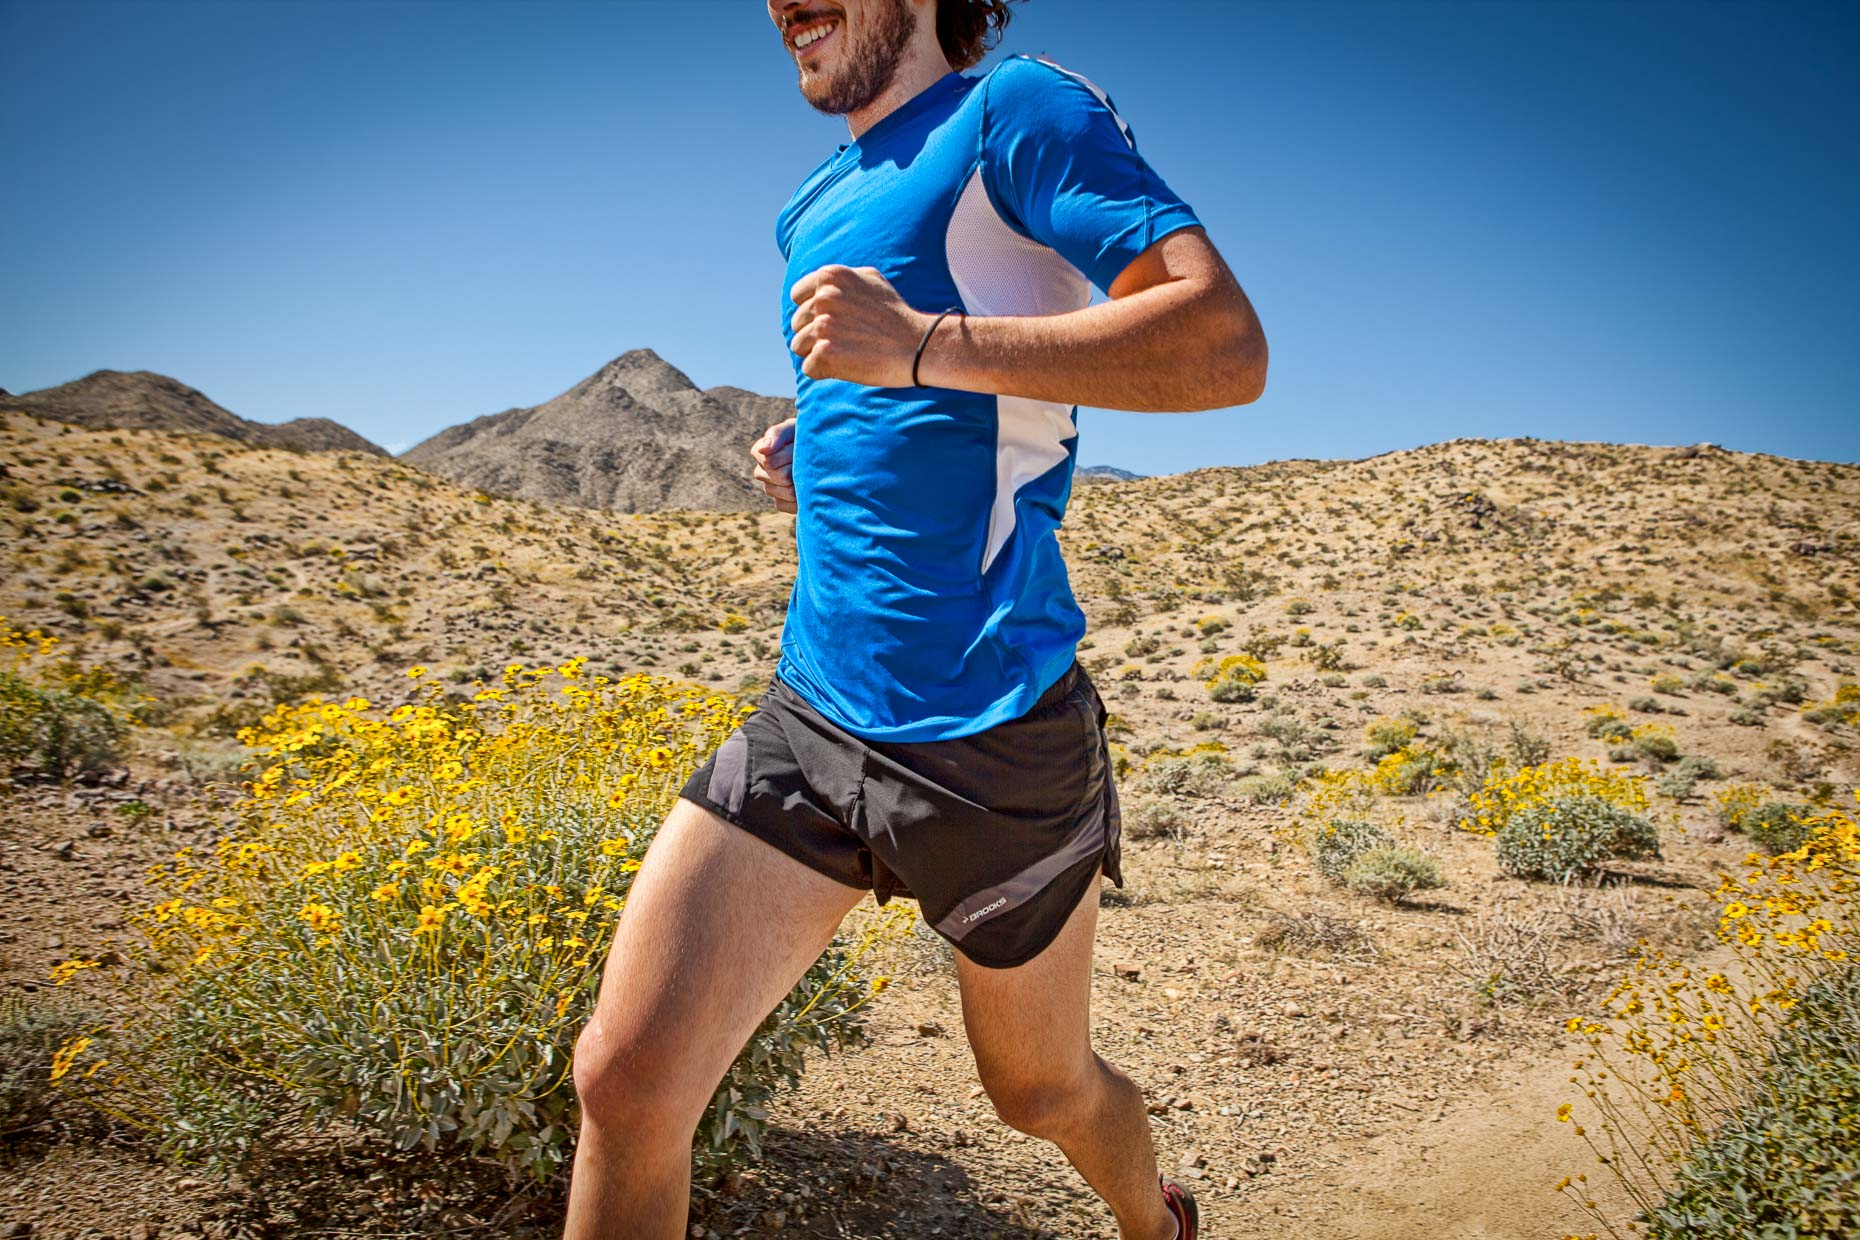 Torso of man running on desert trail in Palm Springs, California. Fitness. David Zaitz Photography.